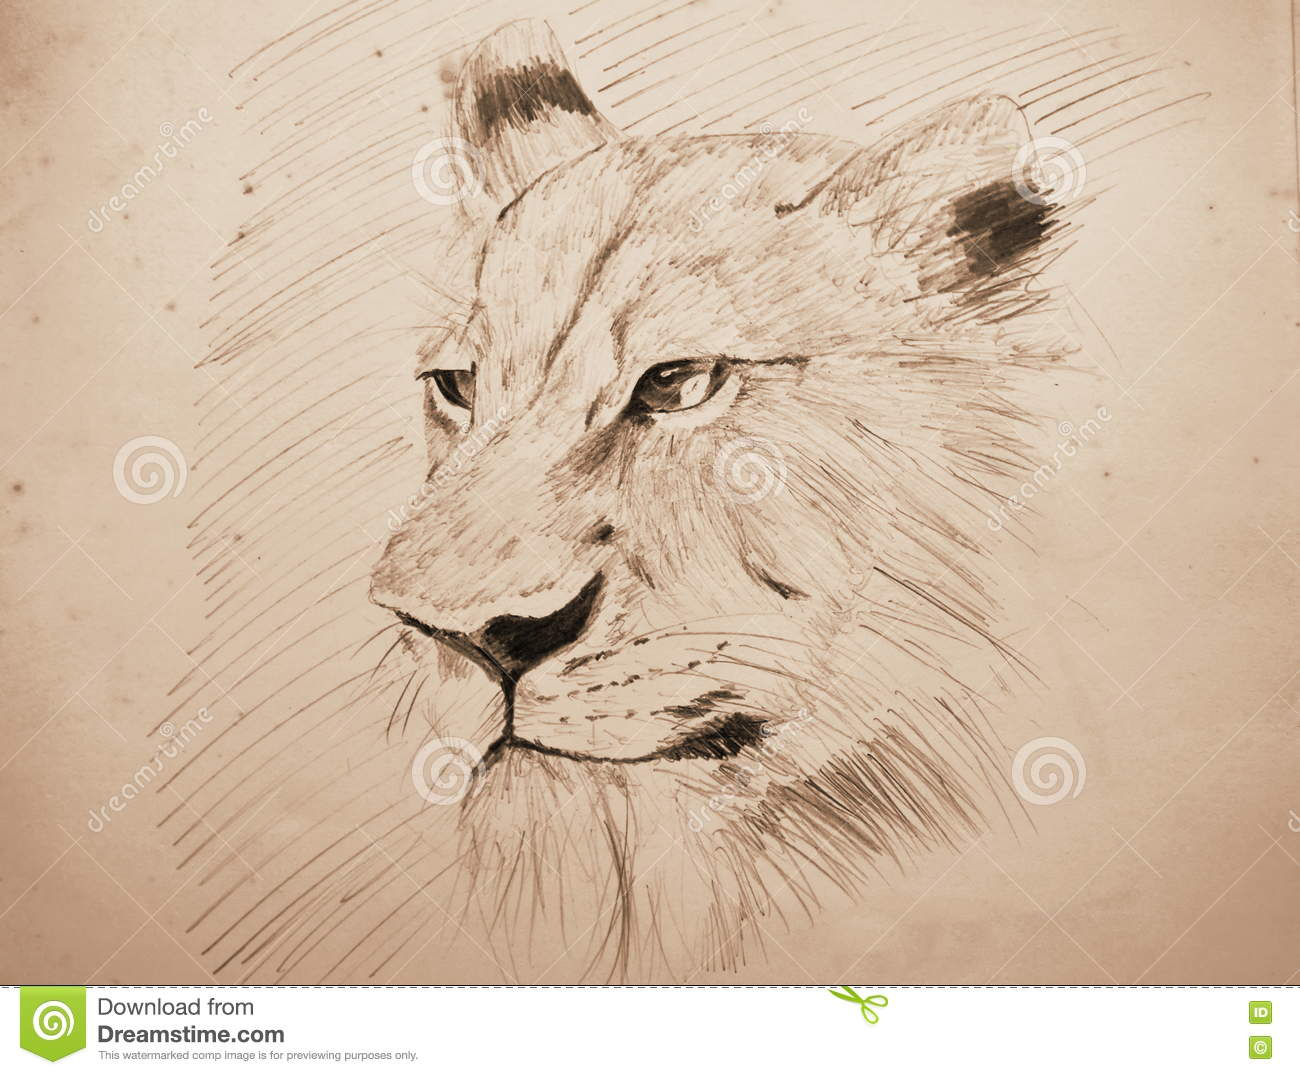 Lion face portrait pencil sketching on old paper with sepia tone